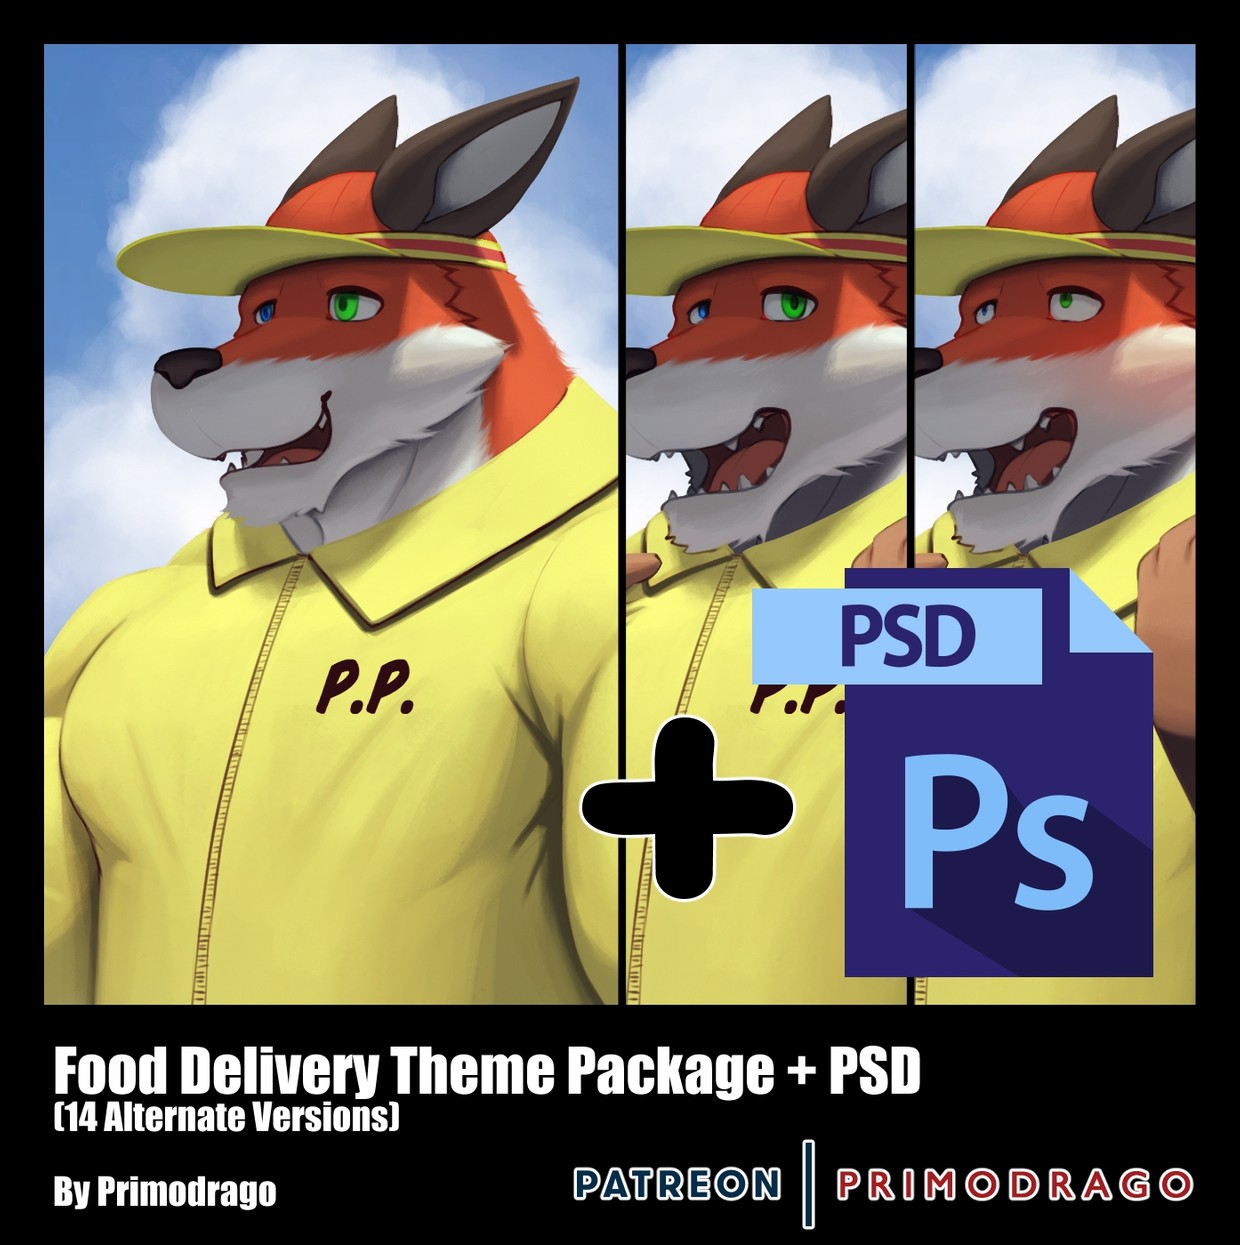 Food Delivery Theme + PSD File